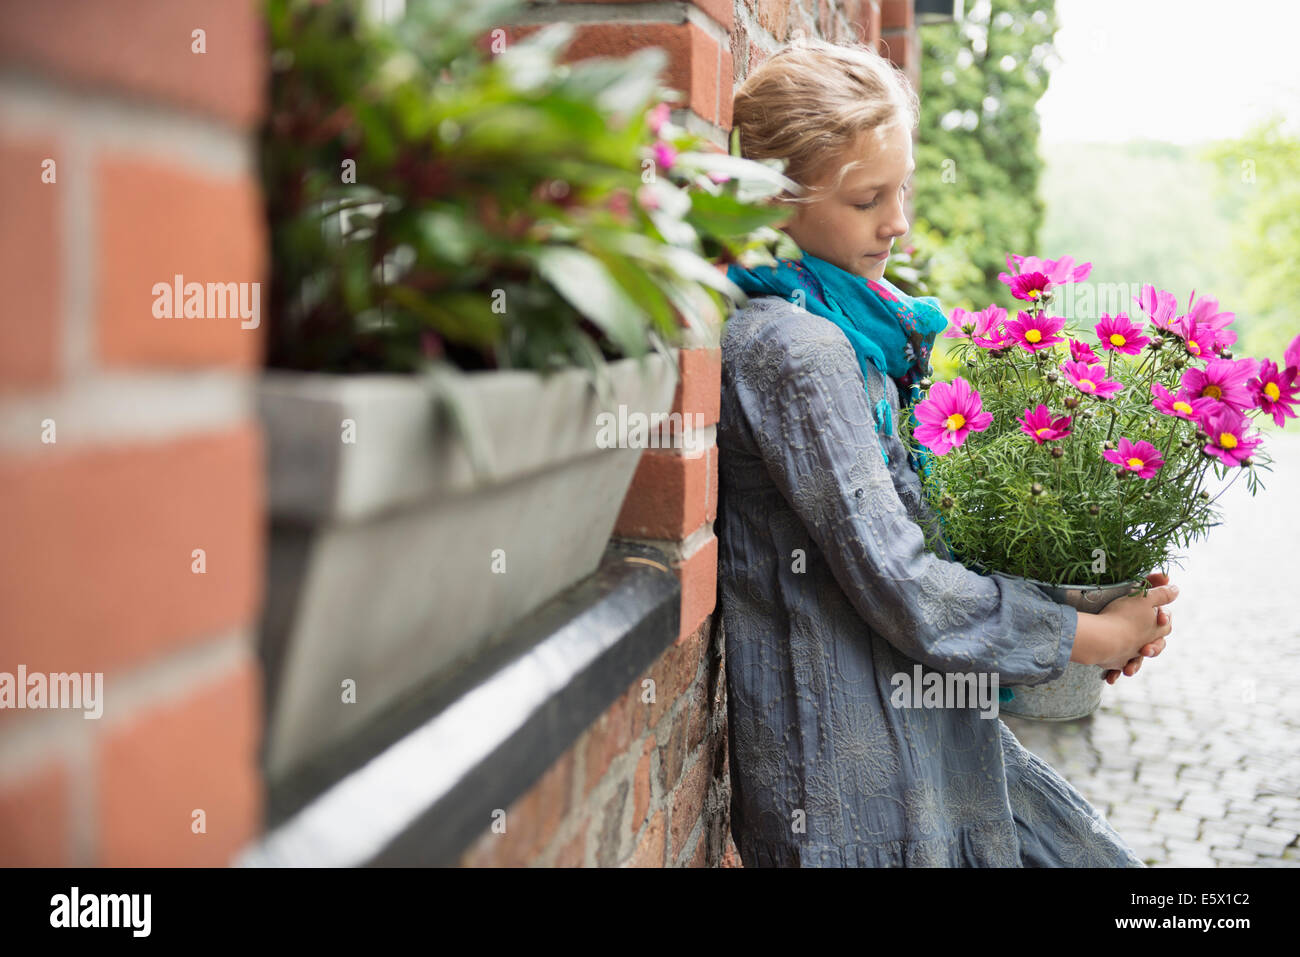 Portrait of girl leaning against wall with flower pot plant in garden - Stock Image